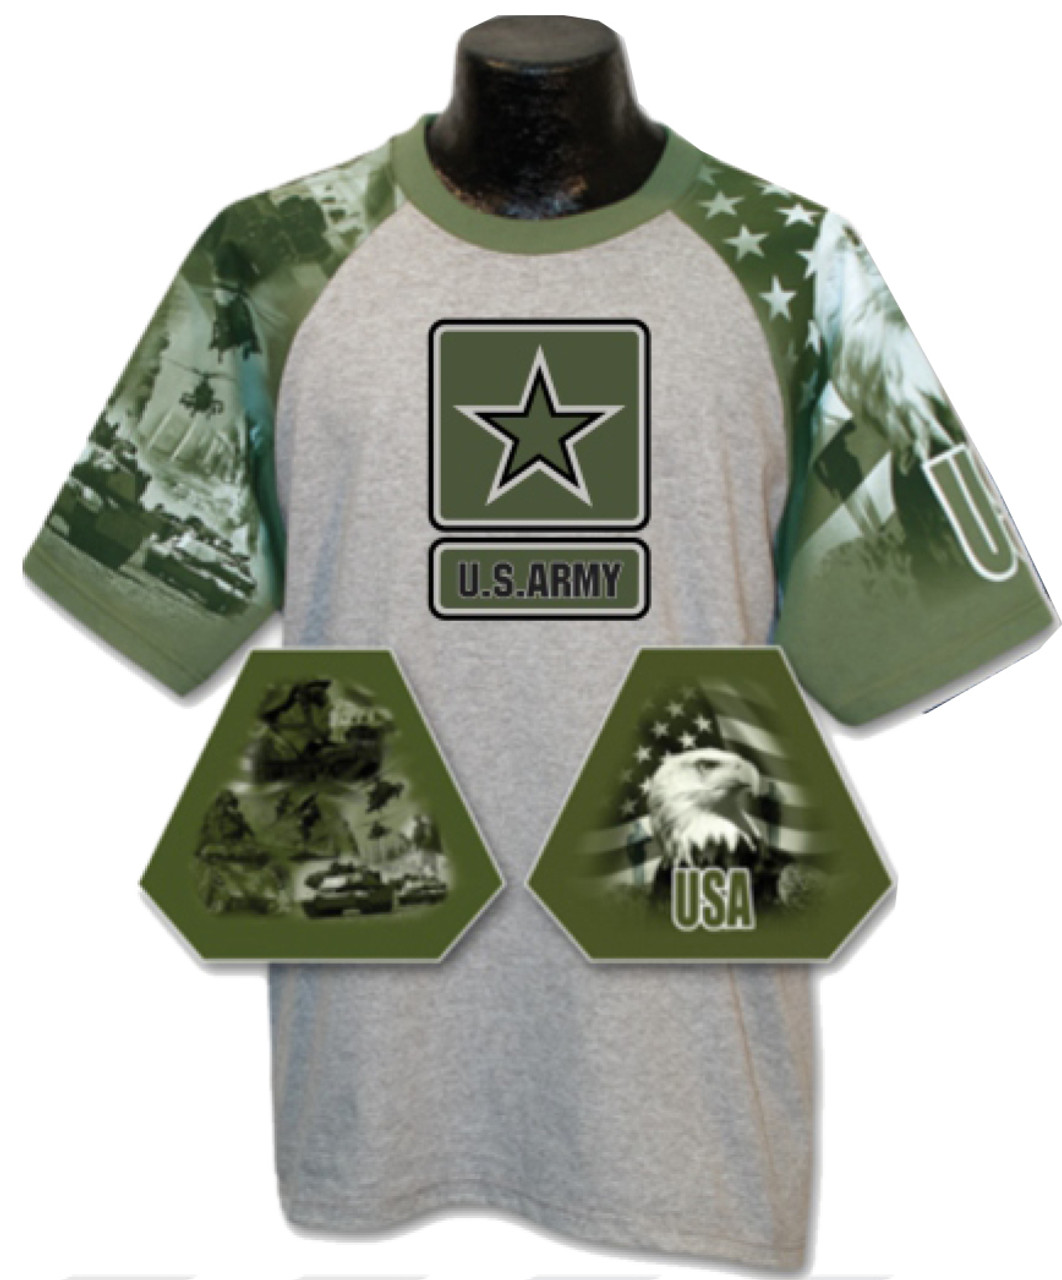 90a14ad7 Everyday Life Military Tee - U.S. Army